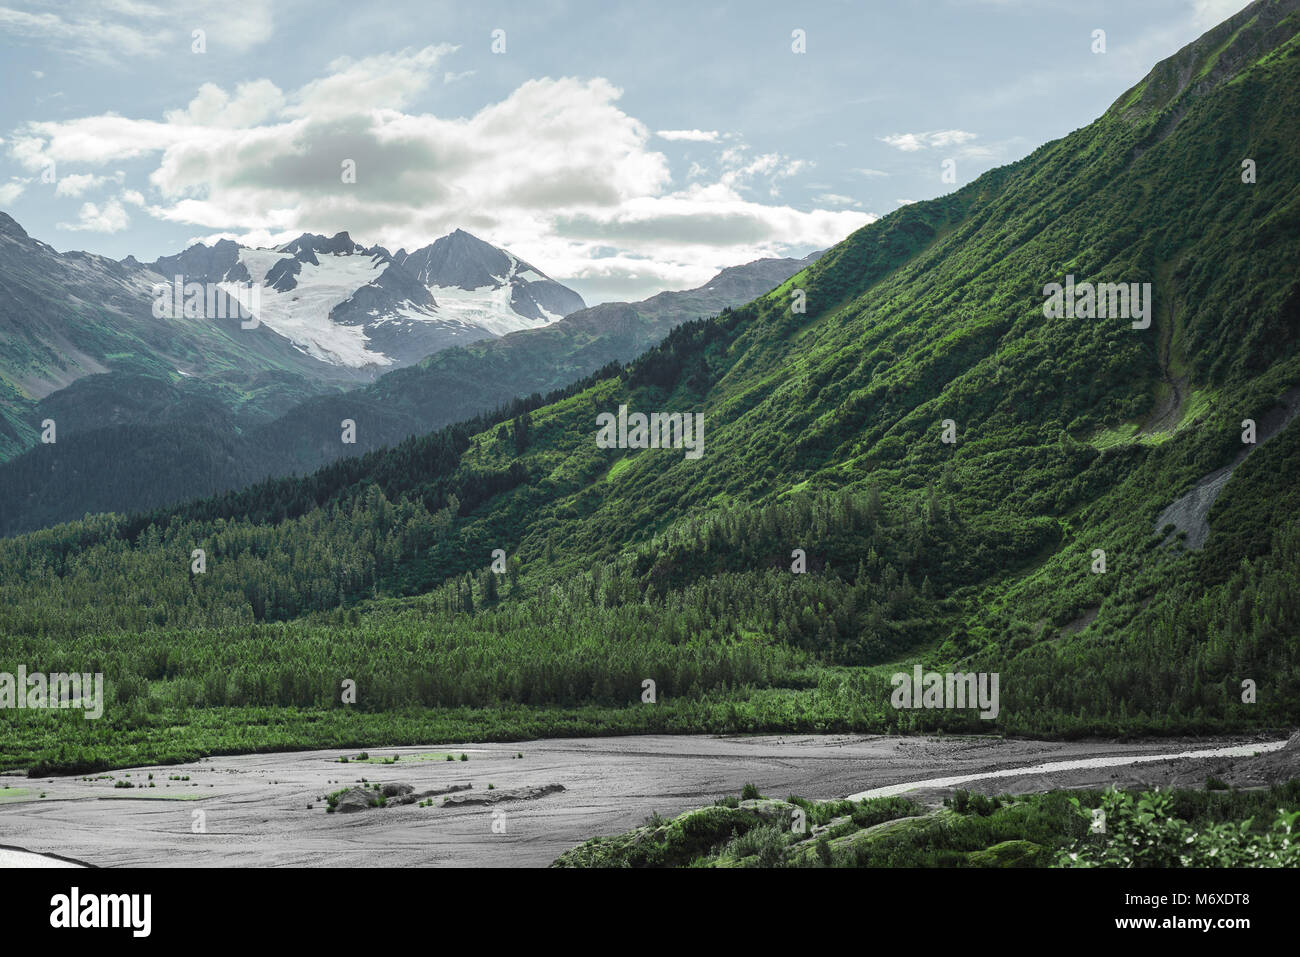 Kenai Fjords National Park Photo Stock